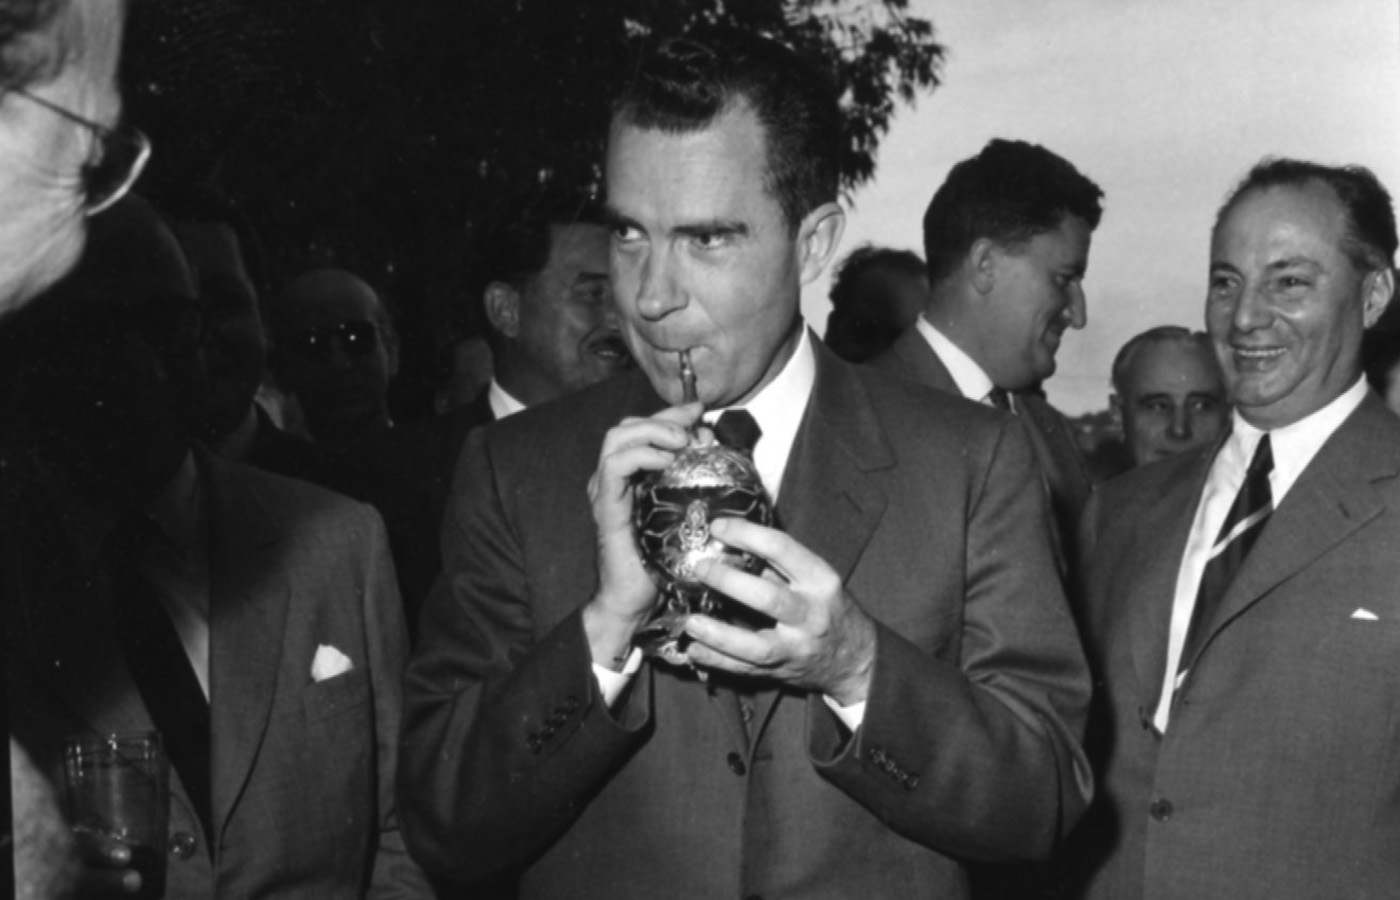 Richard Nixon drinking